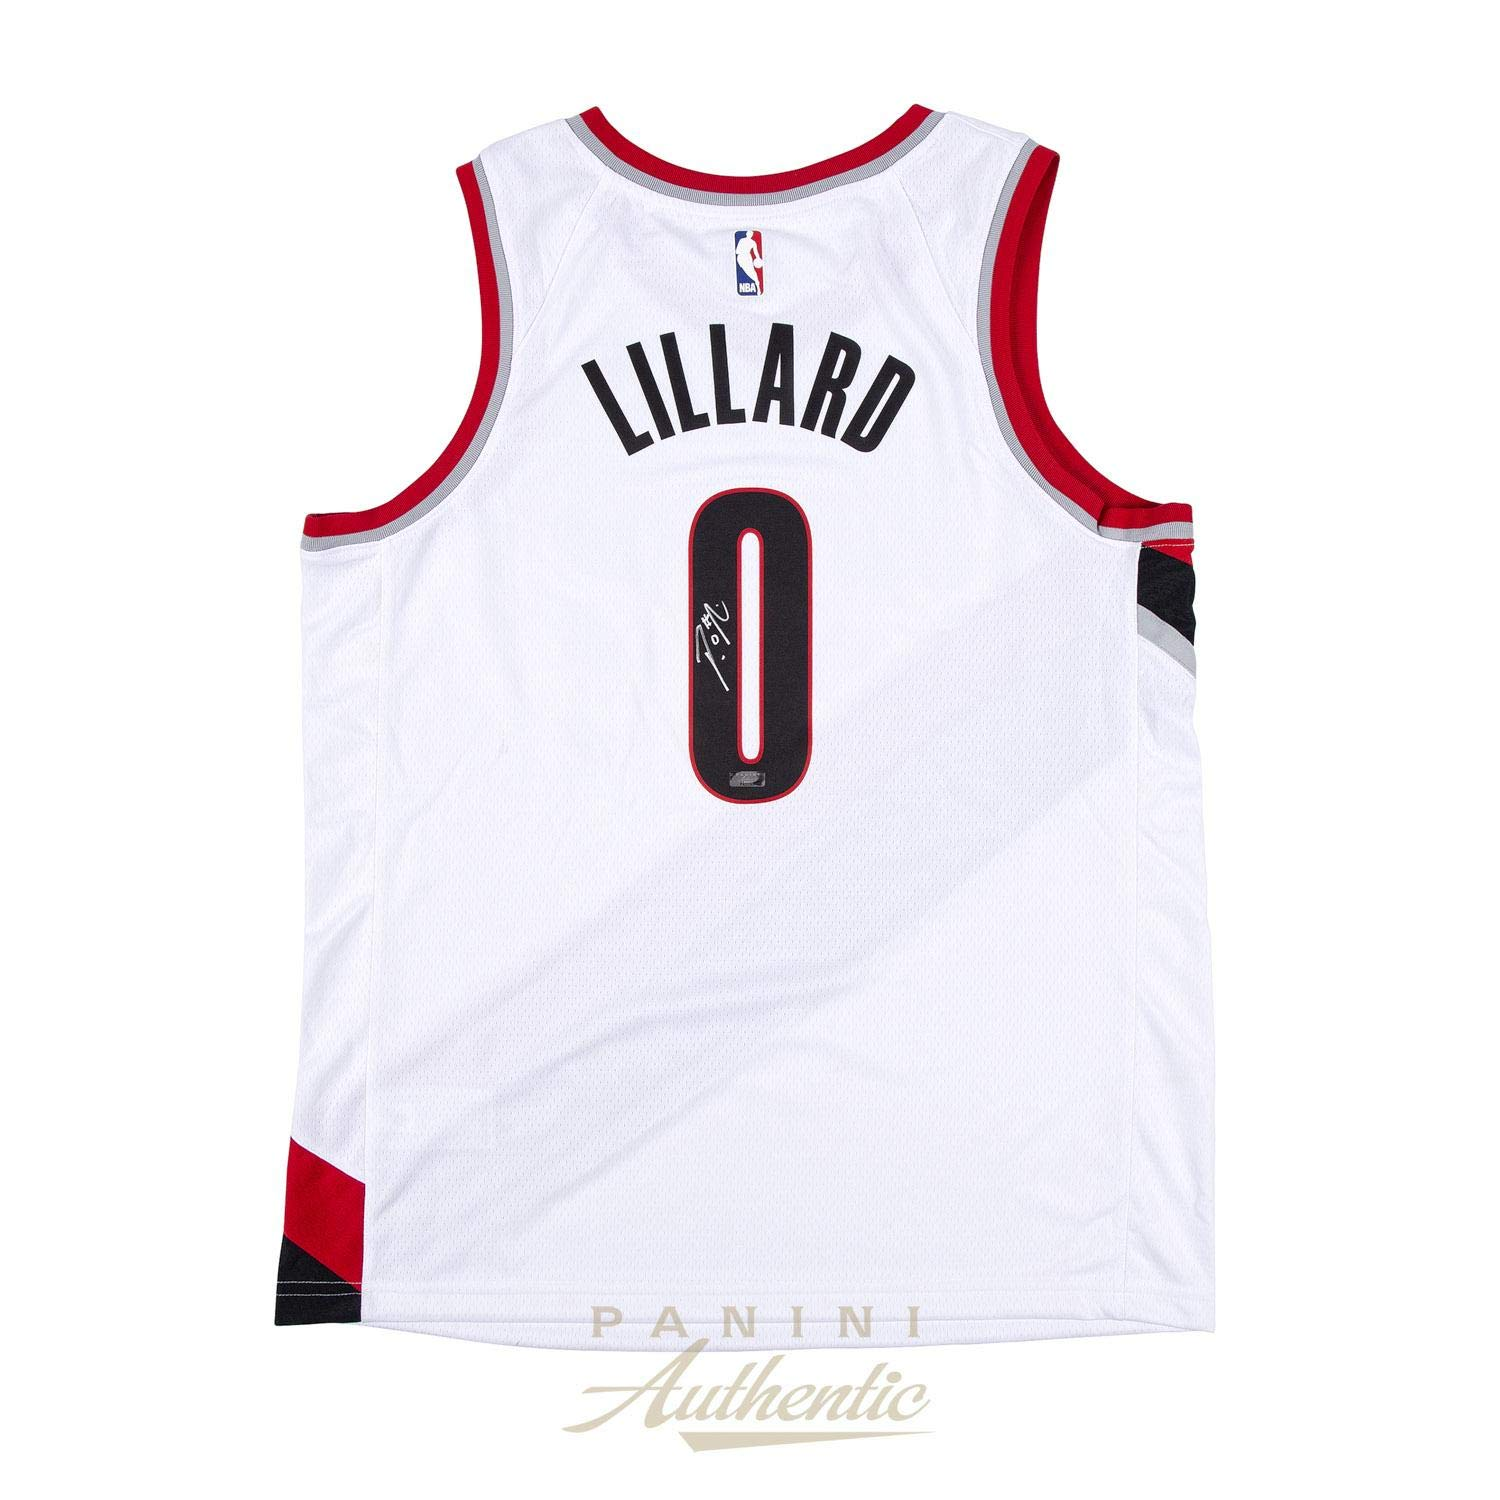 the best attitude a5d0b e4b58 Damian Lillard Signed Jersey - White Nike Trailblazers ...